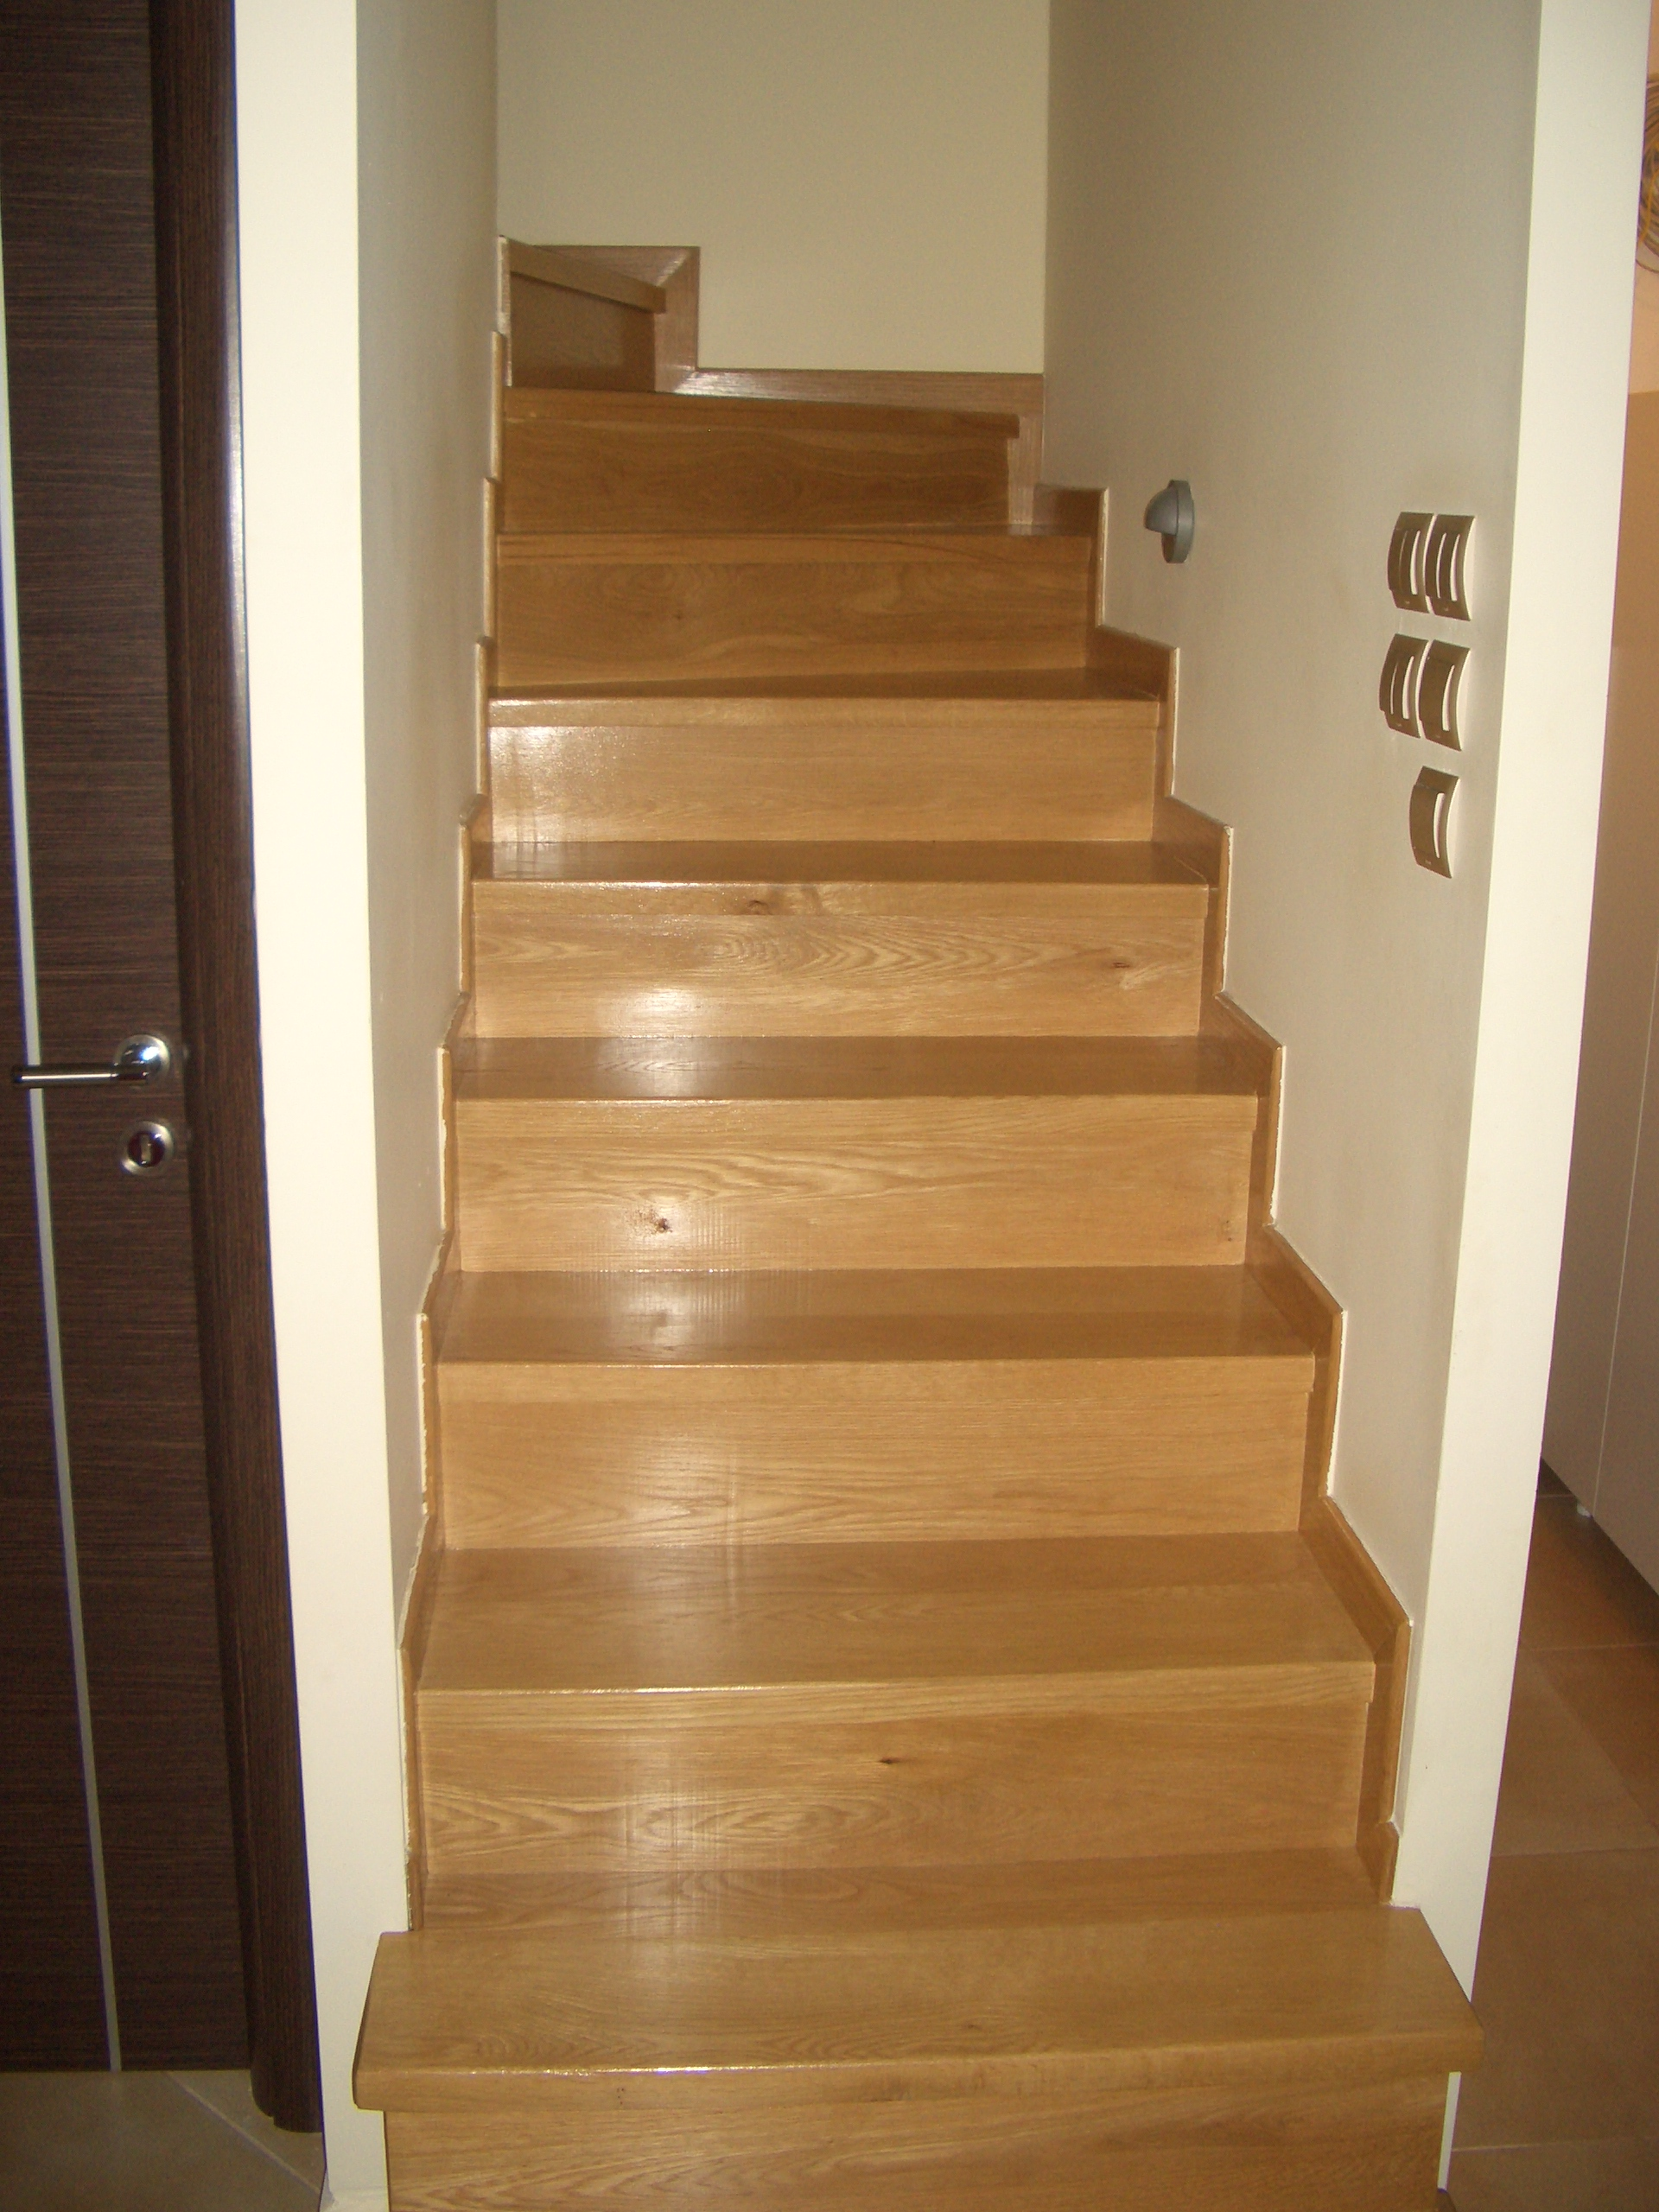 Wooden floor and staircase - Mani